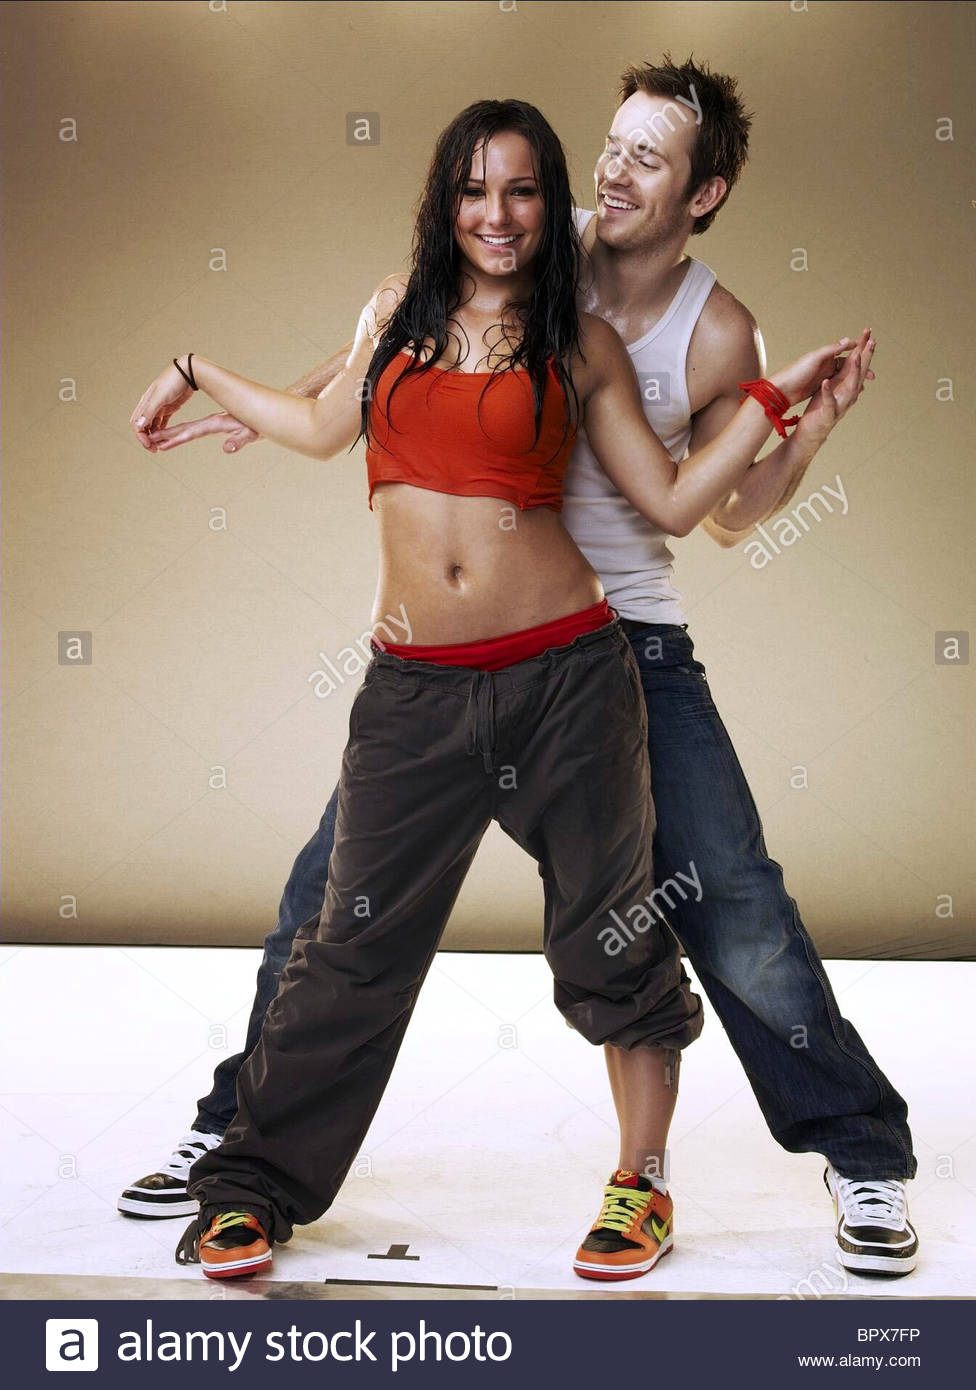 briana evigan robert hoffman step up 2 the streets 2008 stock photo 31309482 alamy. Black Bedroom Furniture Sets. Home Design Ideas